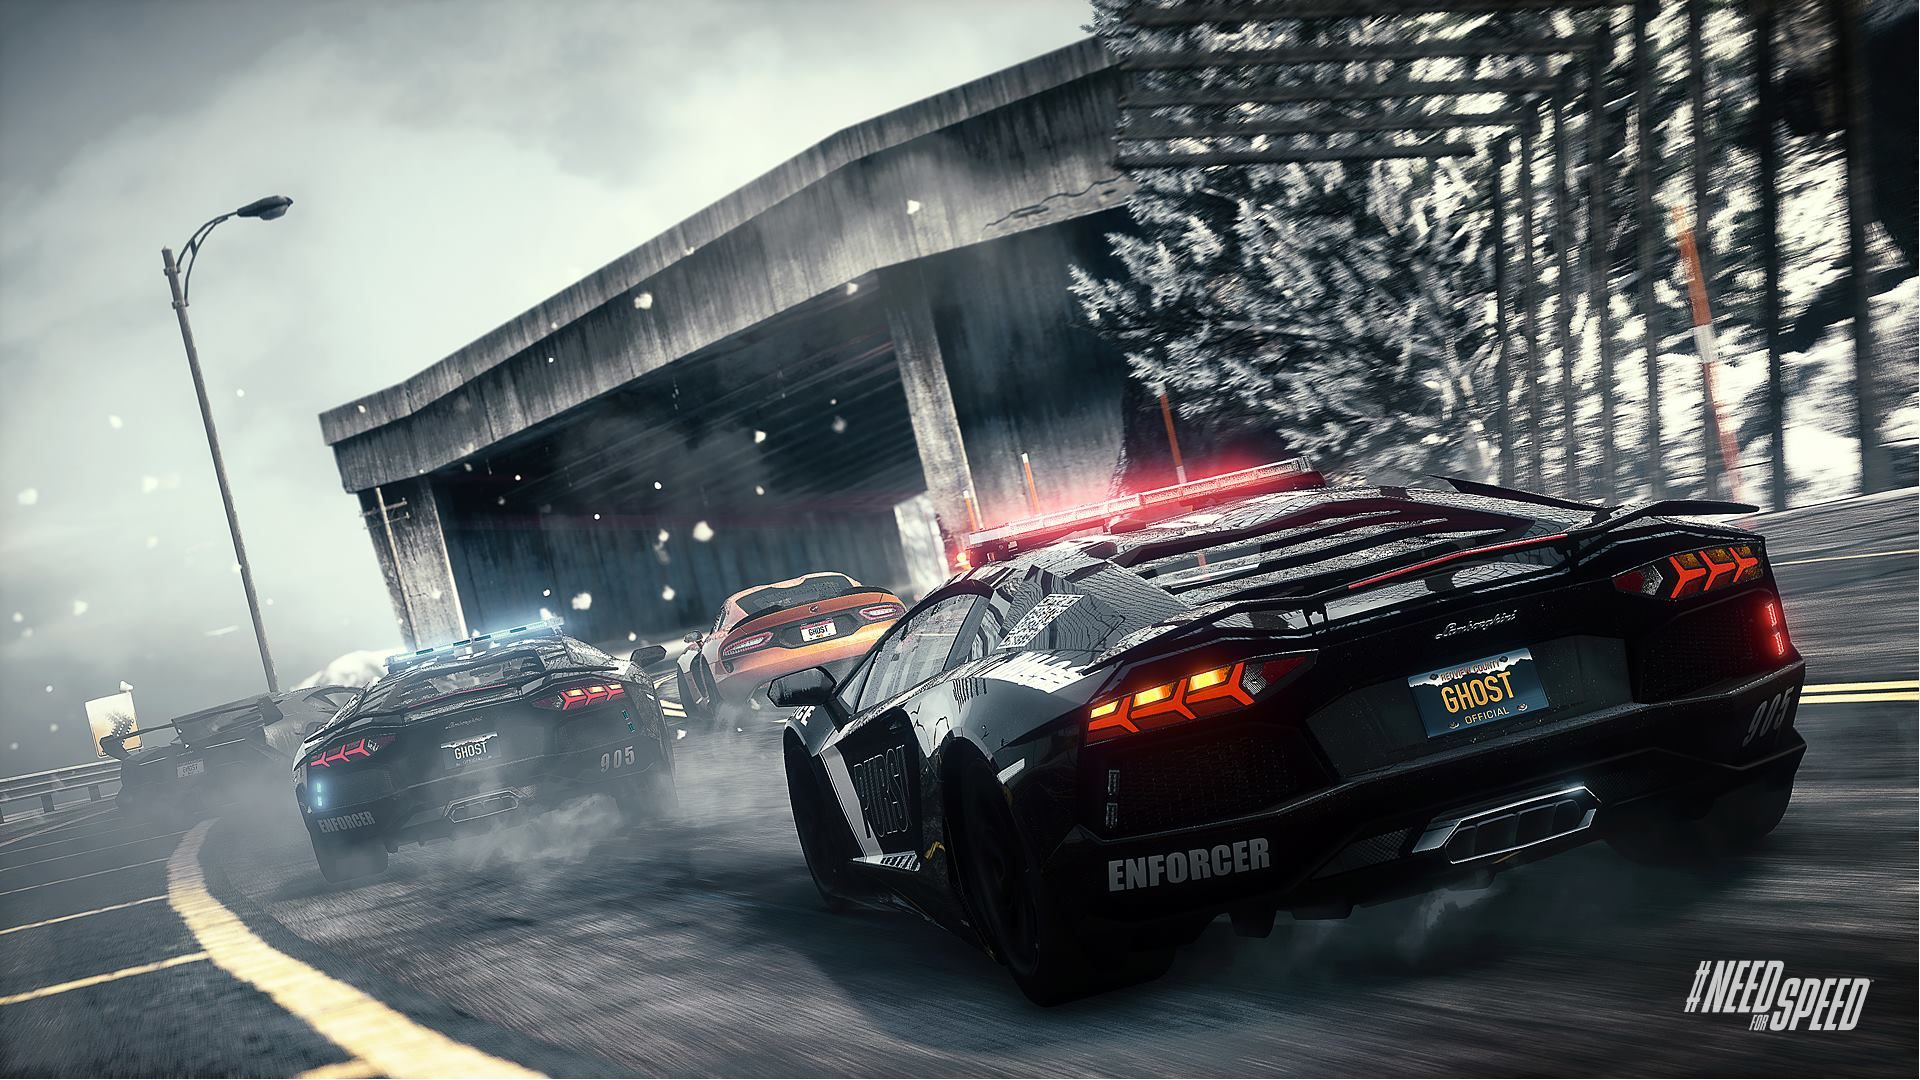 Need For Speed Rivals Lamborghini 1920x1080 Need Iphone 6s Plus Wallpaper Background For Iphone6s Need For Speed Rivals Lamborghini Lamborghini Veneno